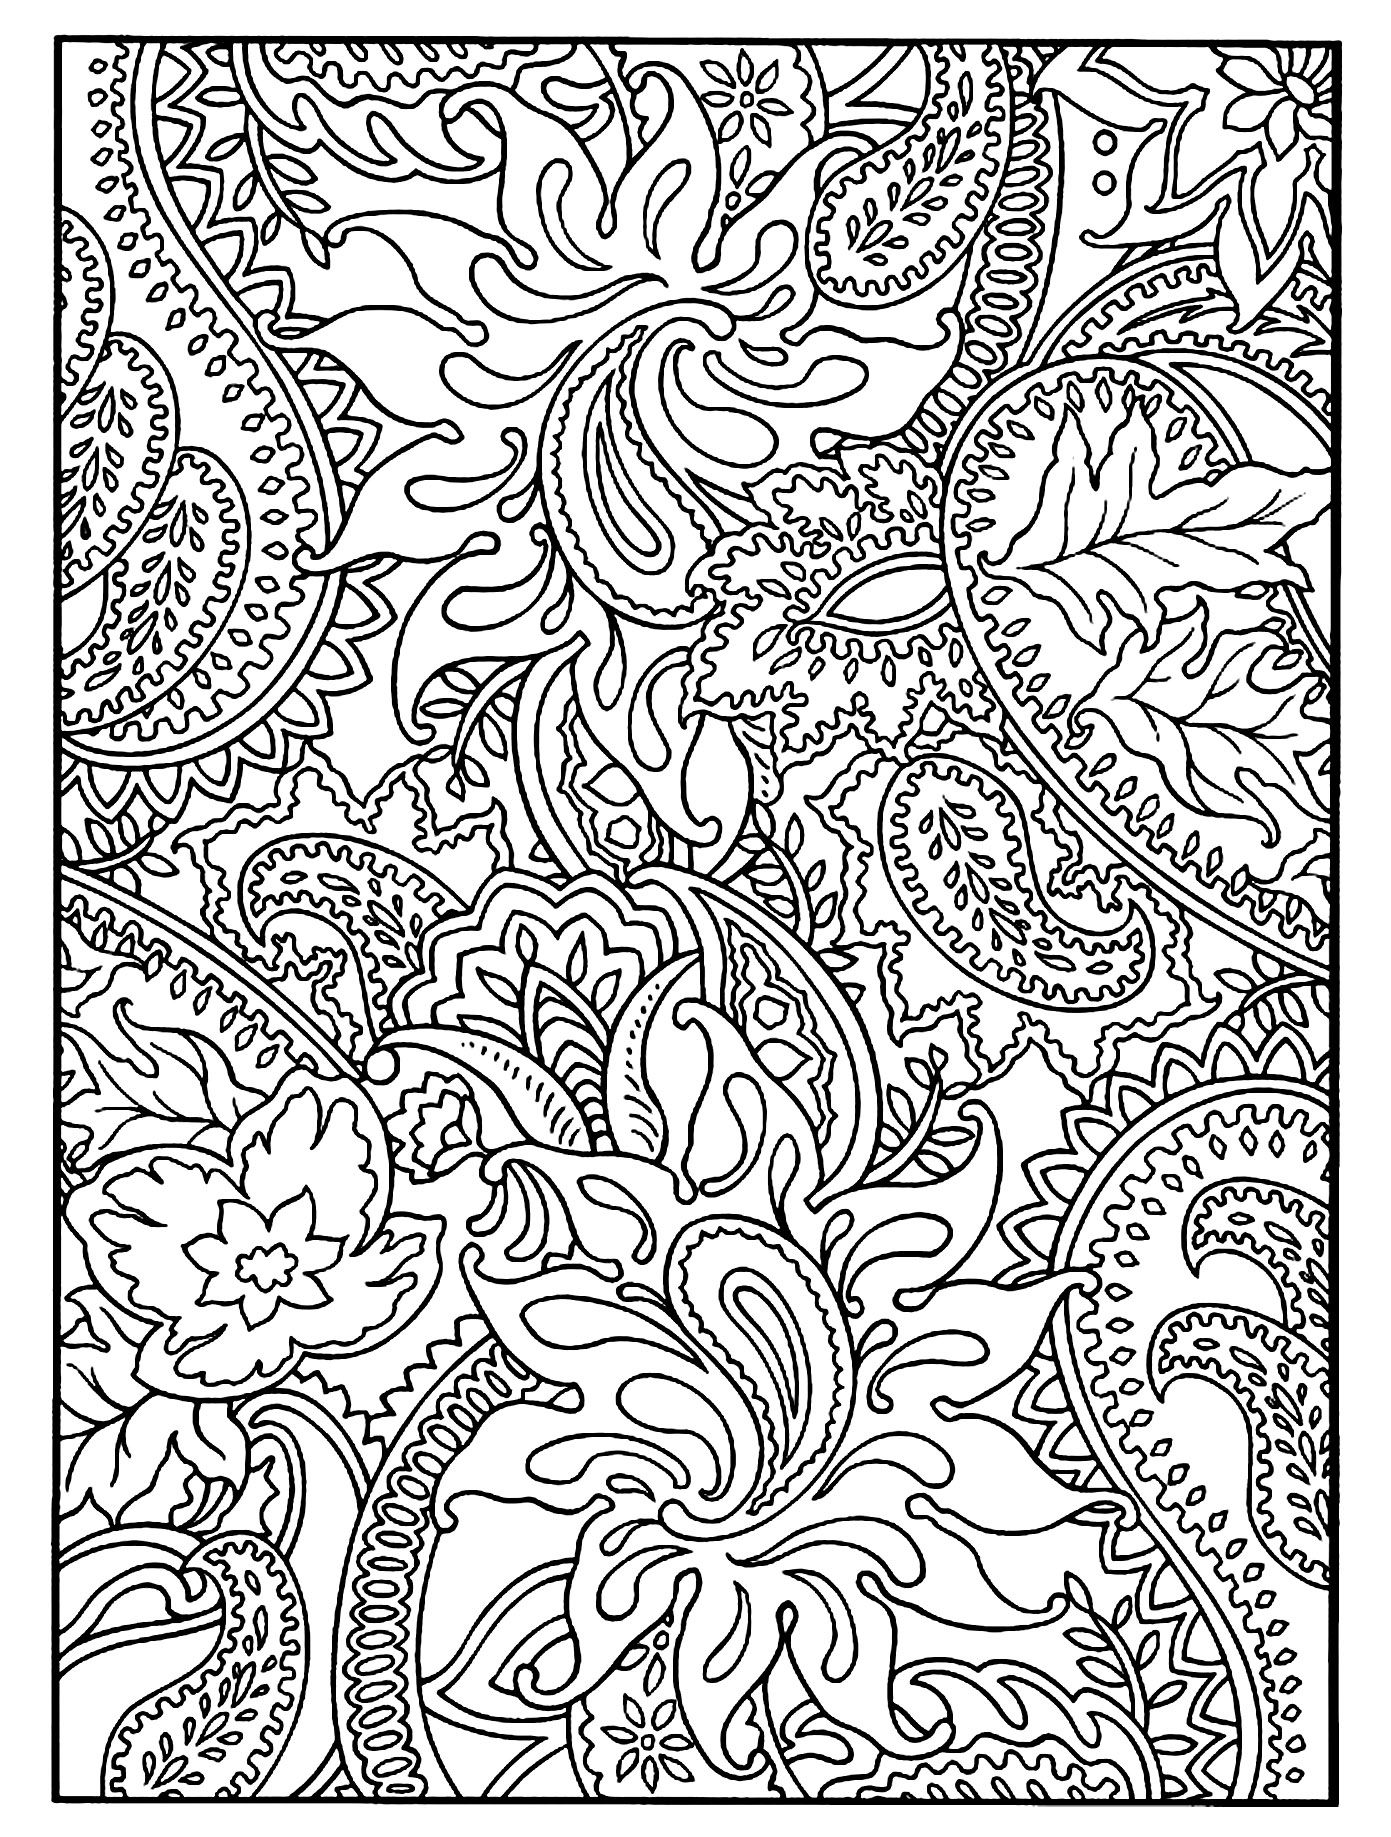 pattern coloring pages print out - photo#6